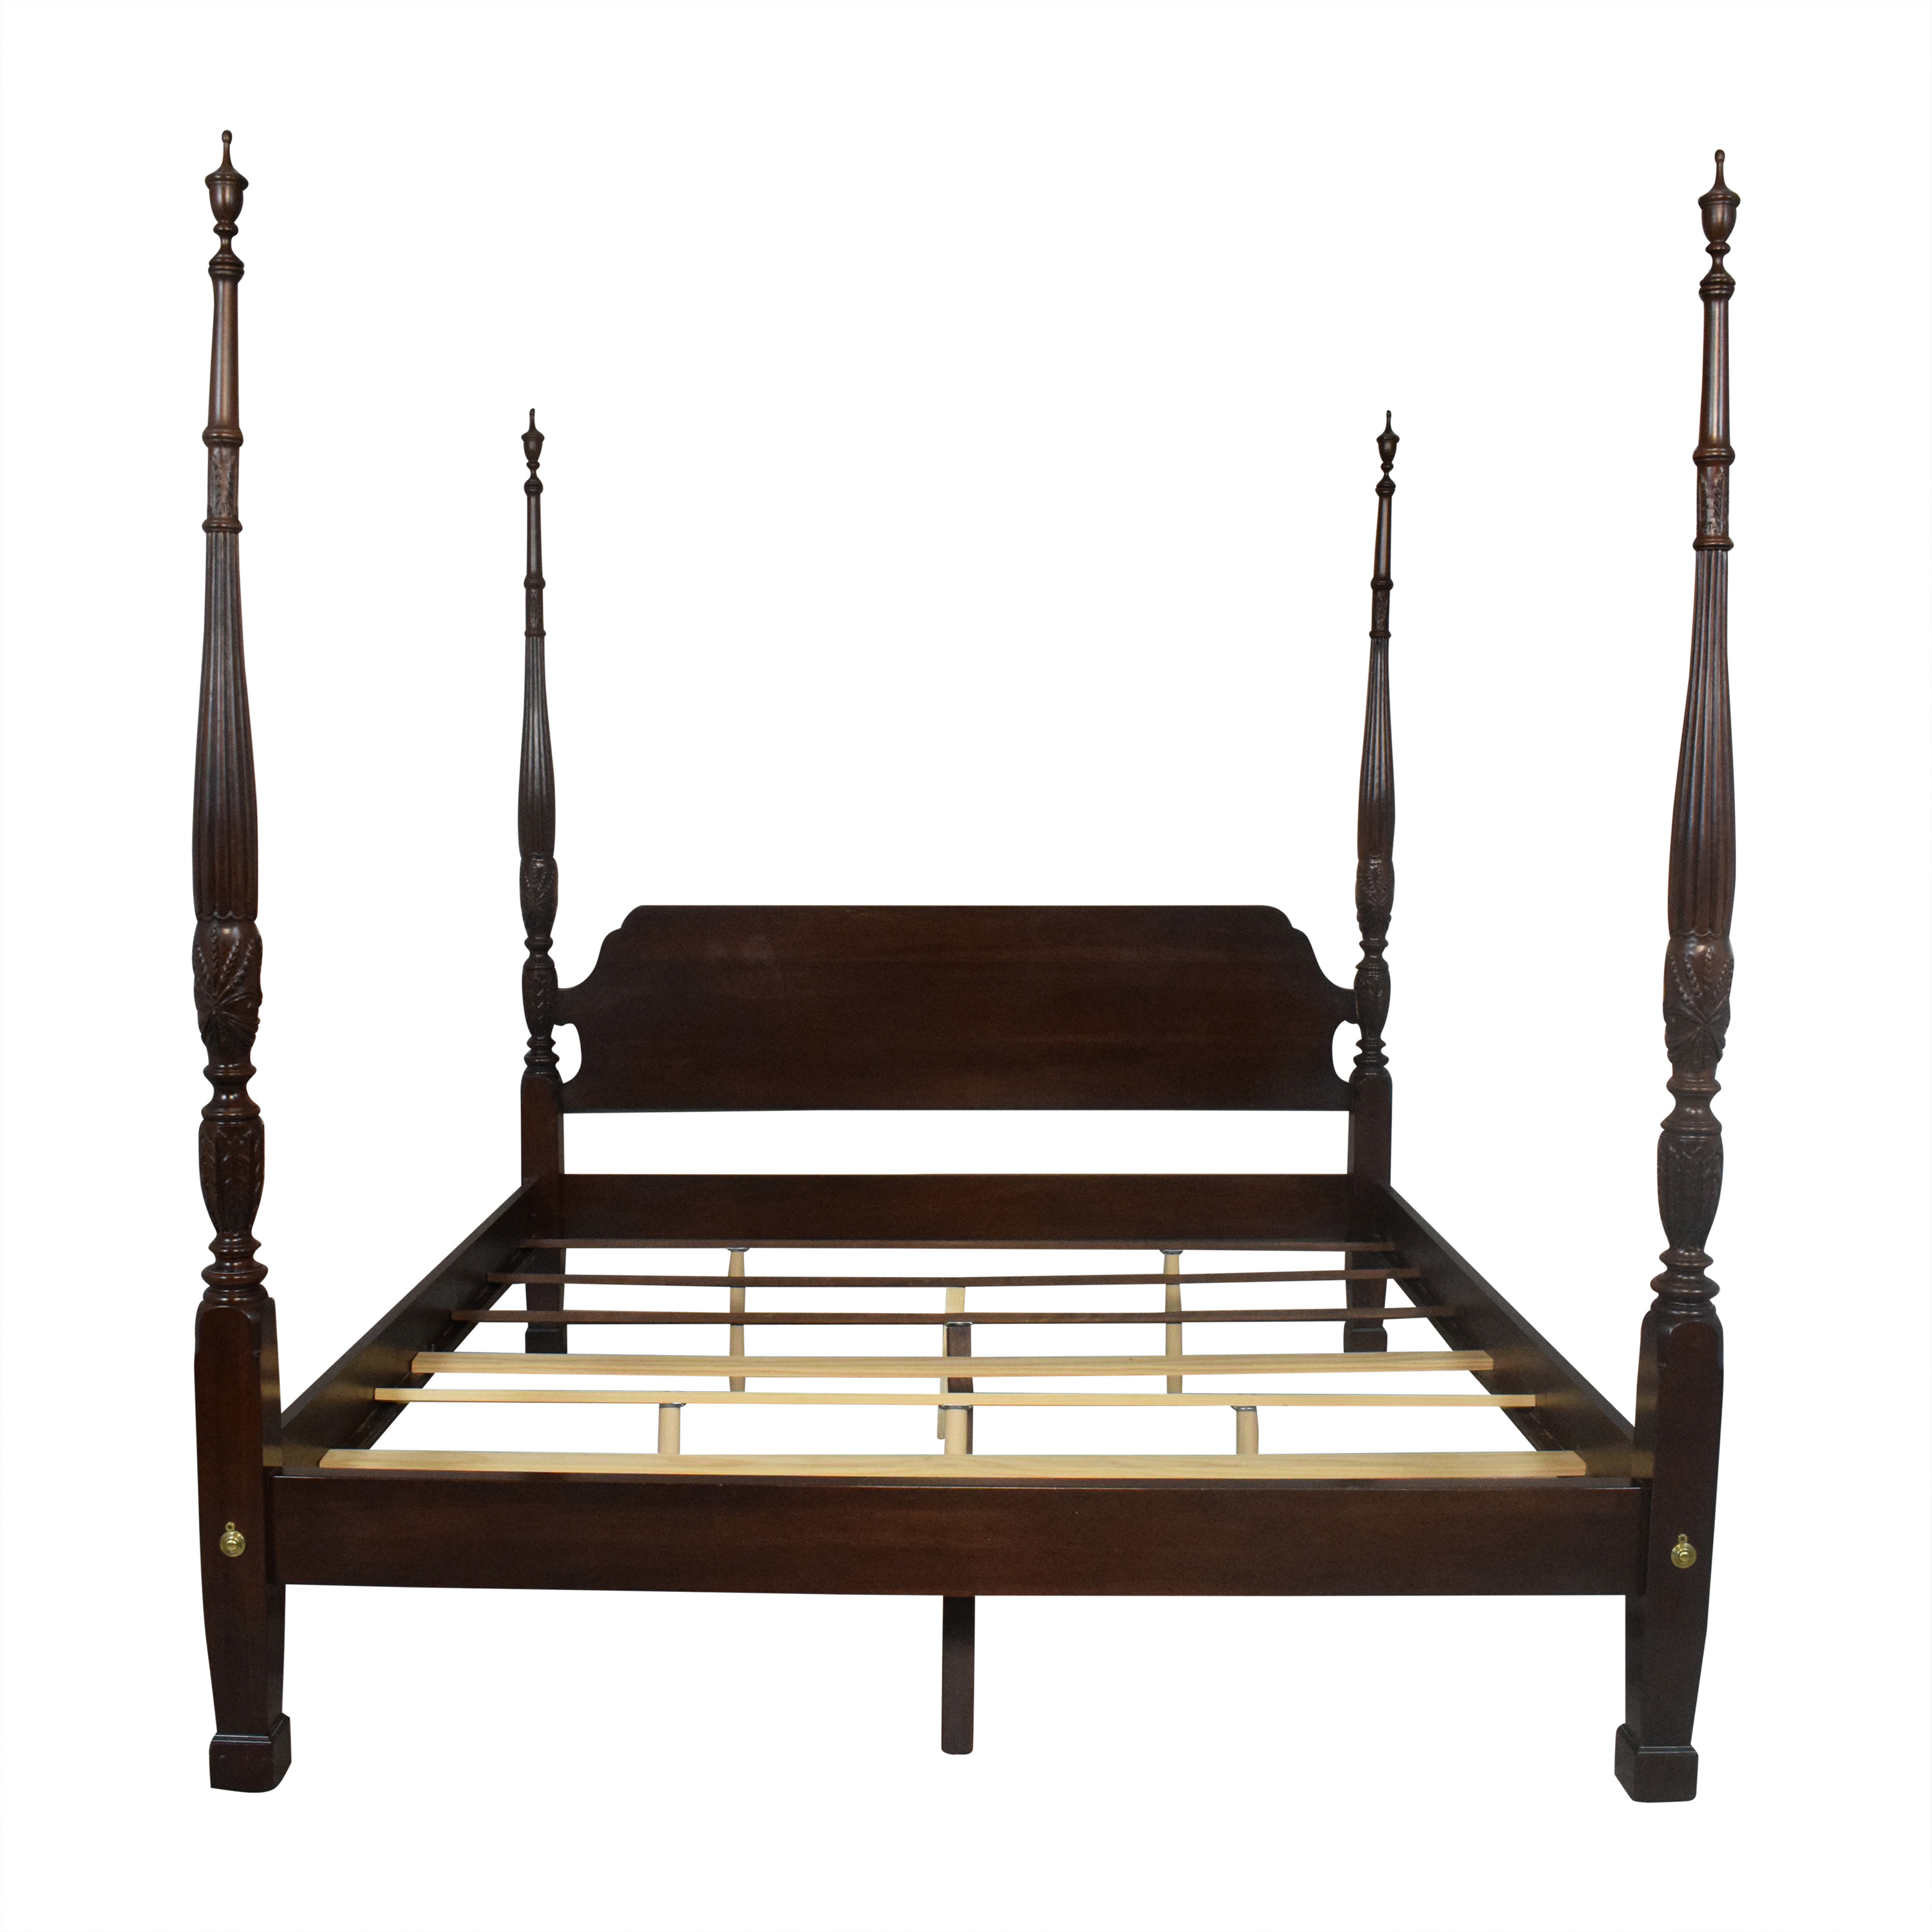 buy Ethan Allen Georgian Court Four Poster King Bed Ethan Allen Beds